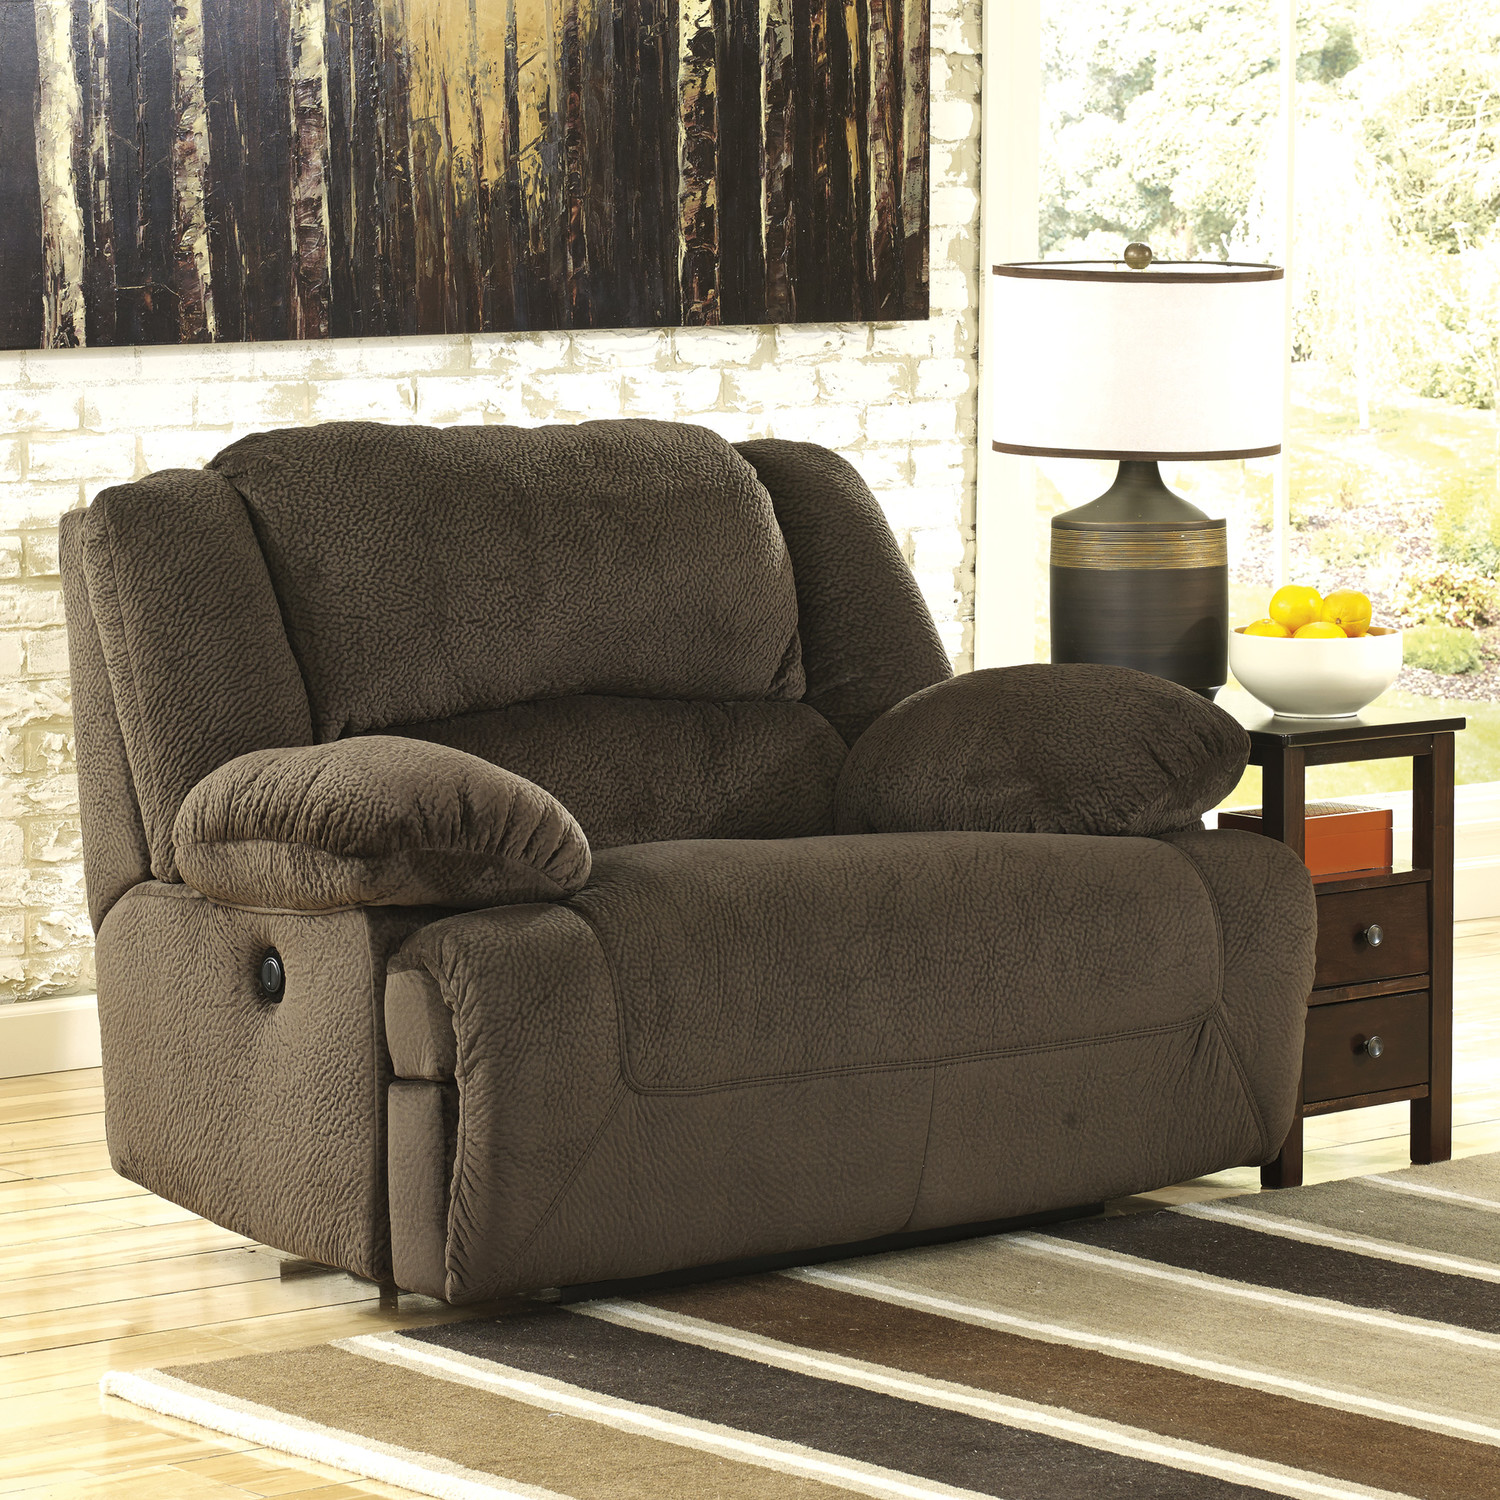 Big Sofa Chair Oversized Reclining Sofa Damacio Oversized Recliner Ashley